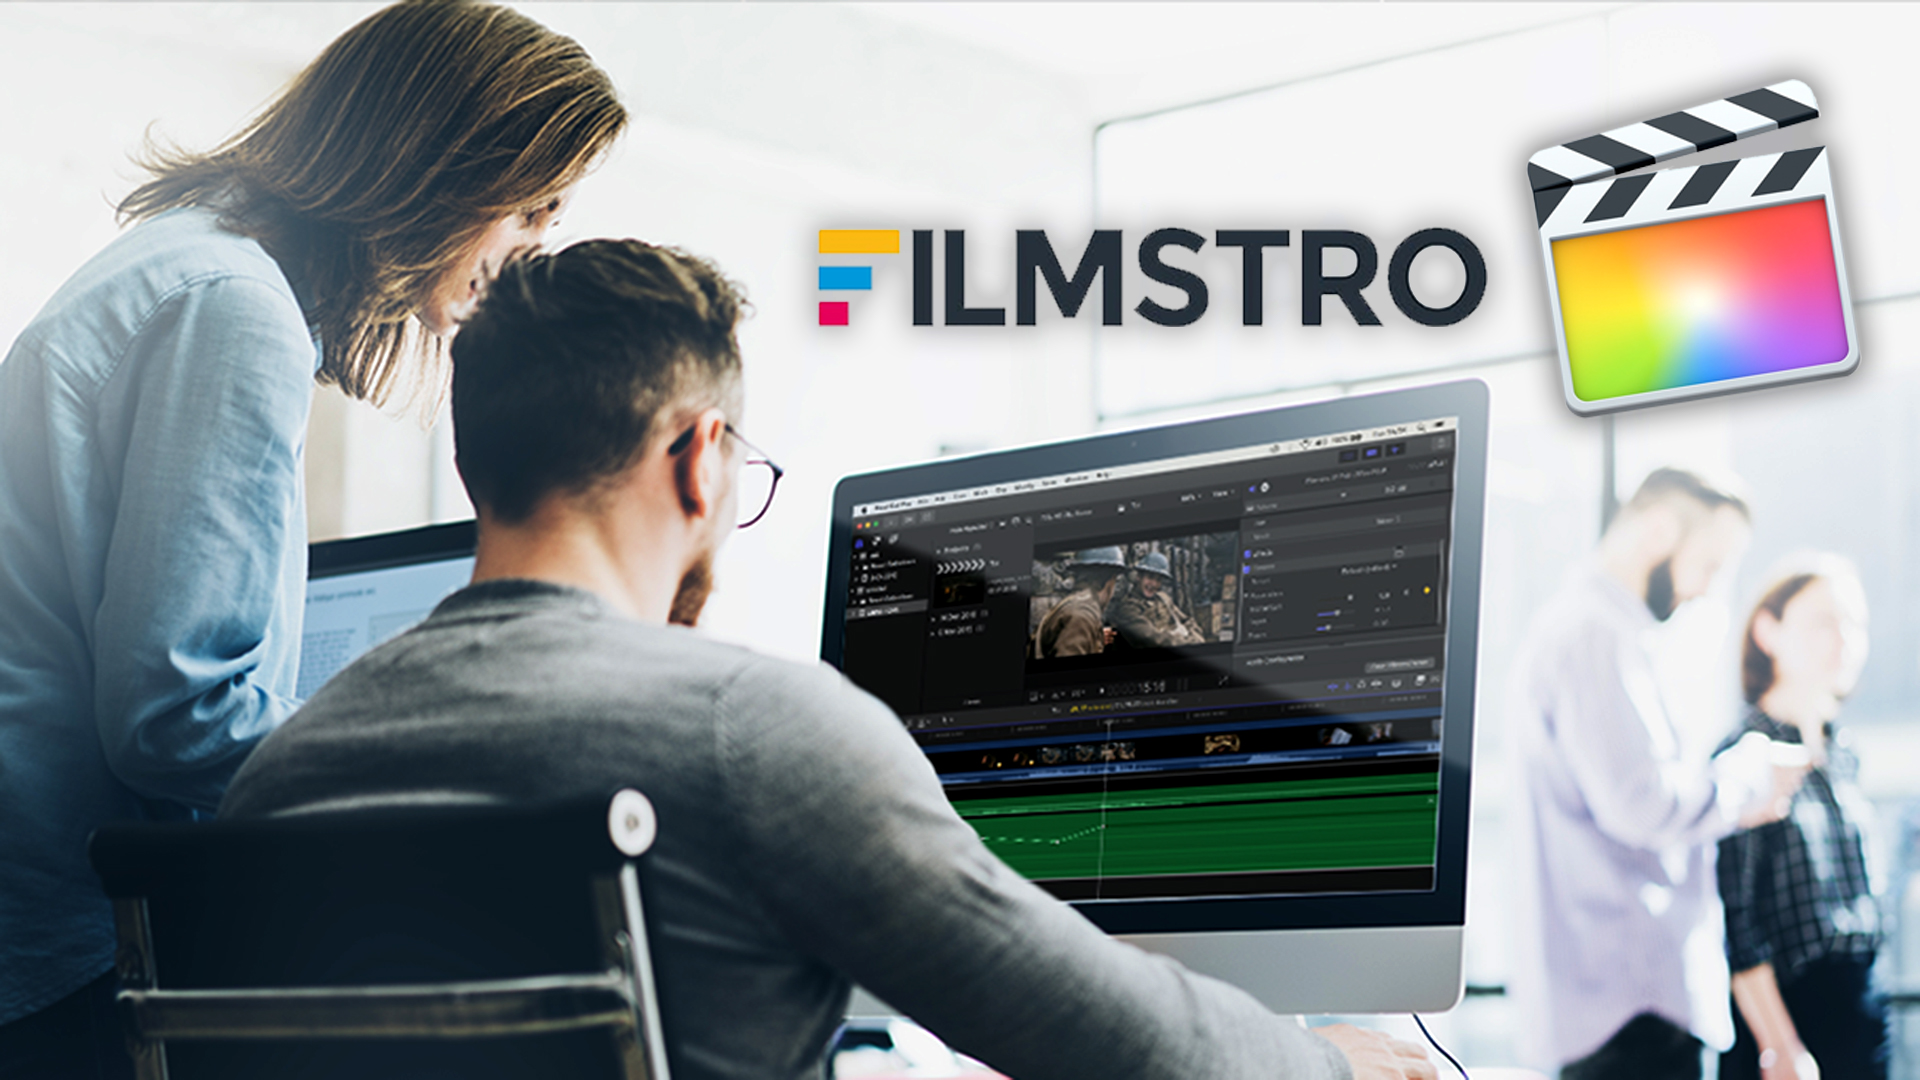 Filmstro Launches Dedicated Final Cut Pro X Plugin   Shot With a Rock